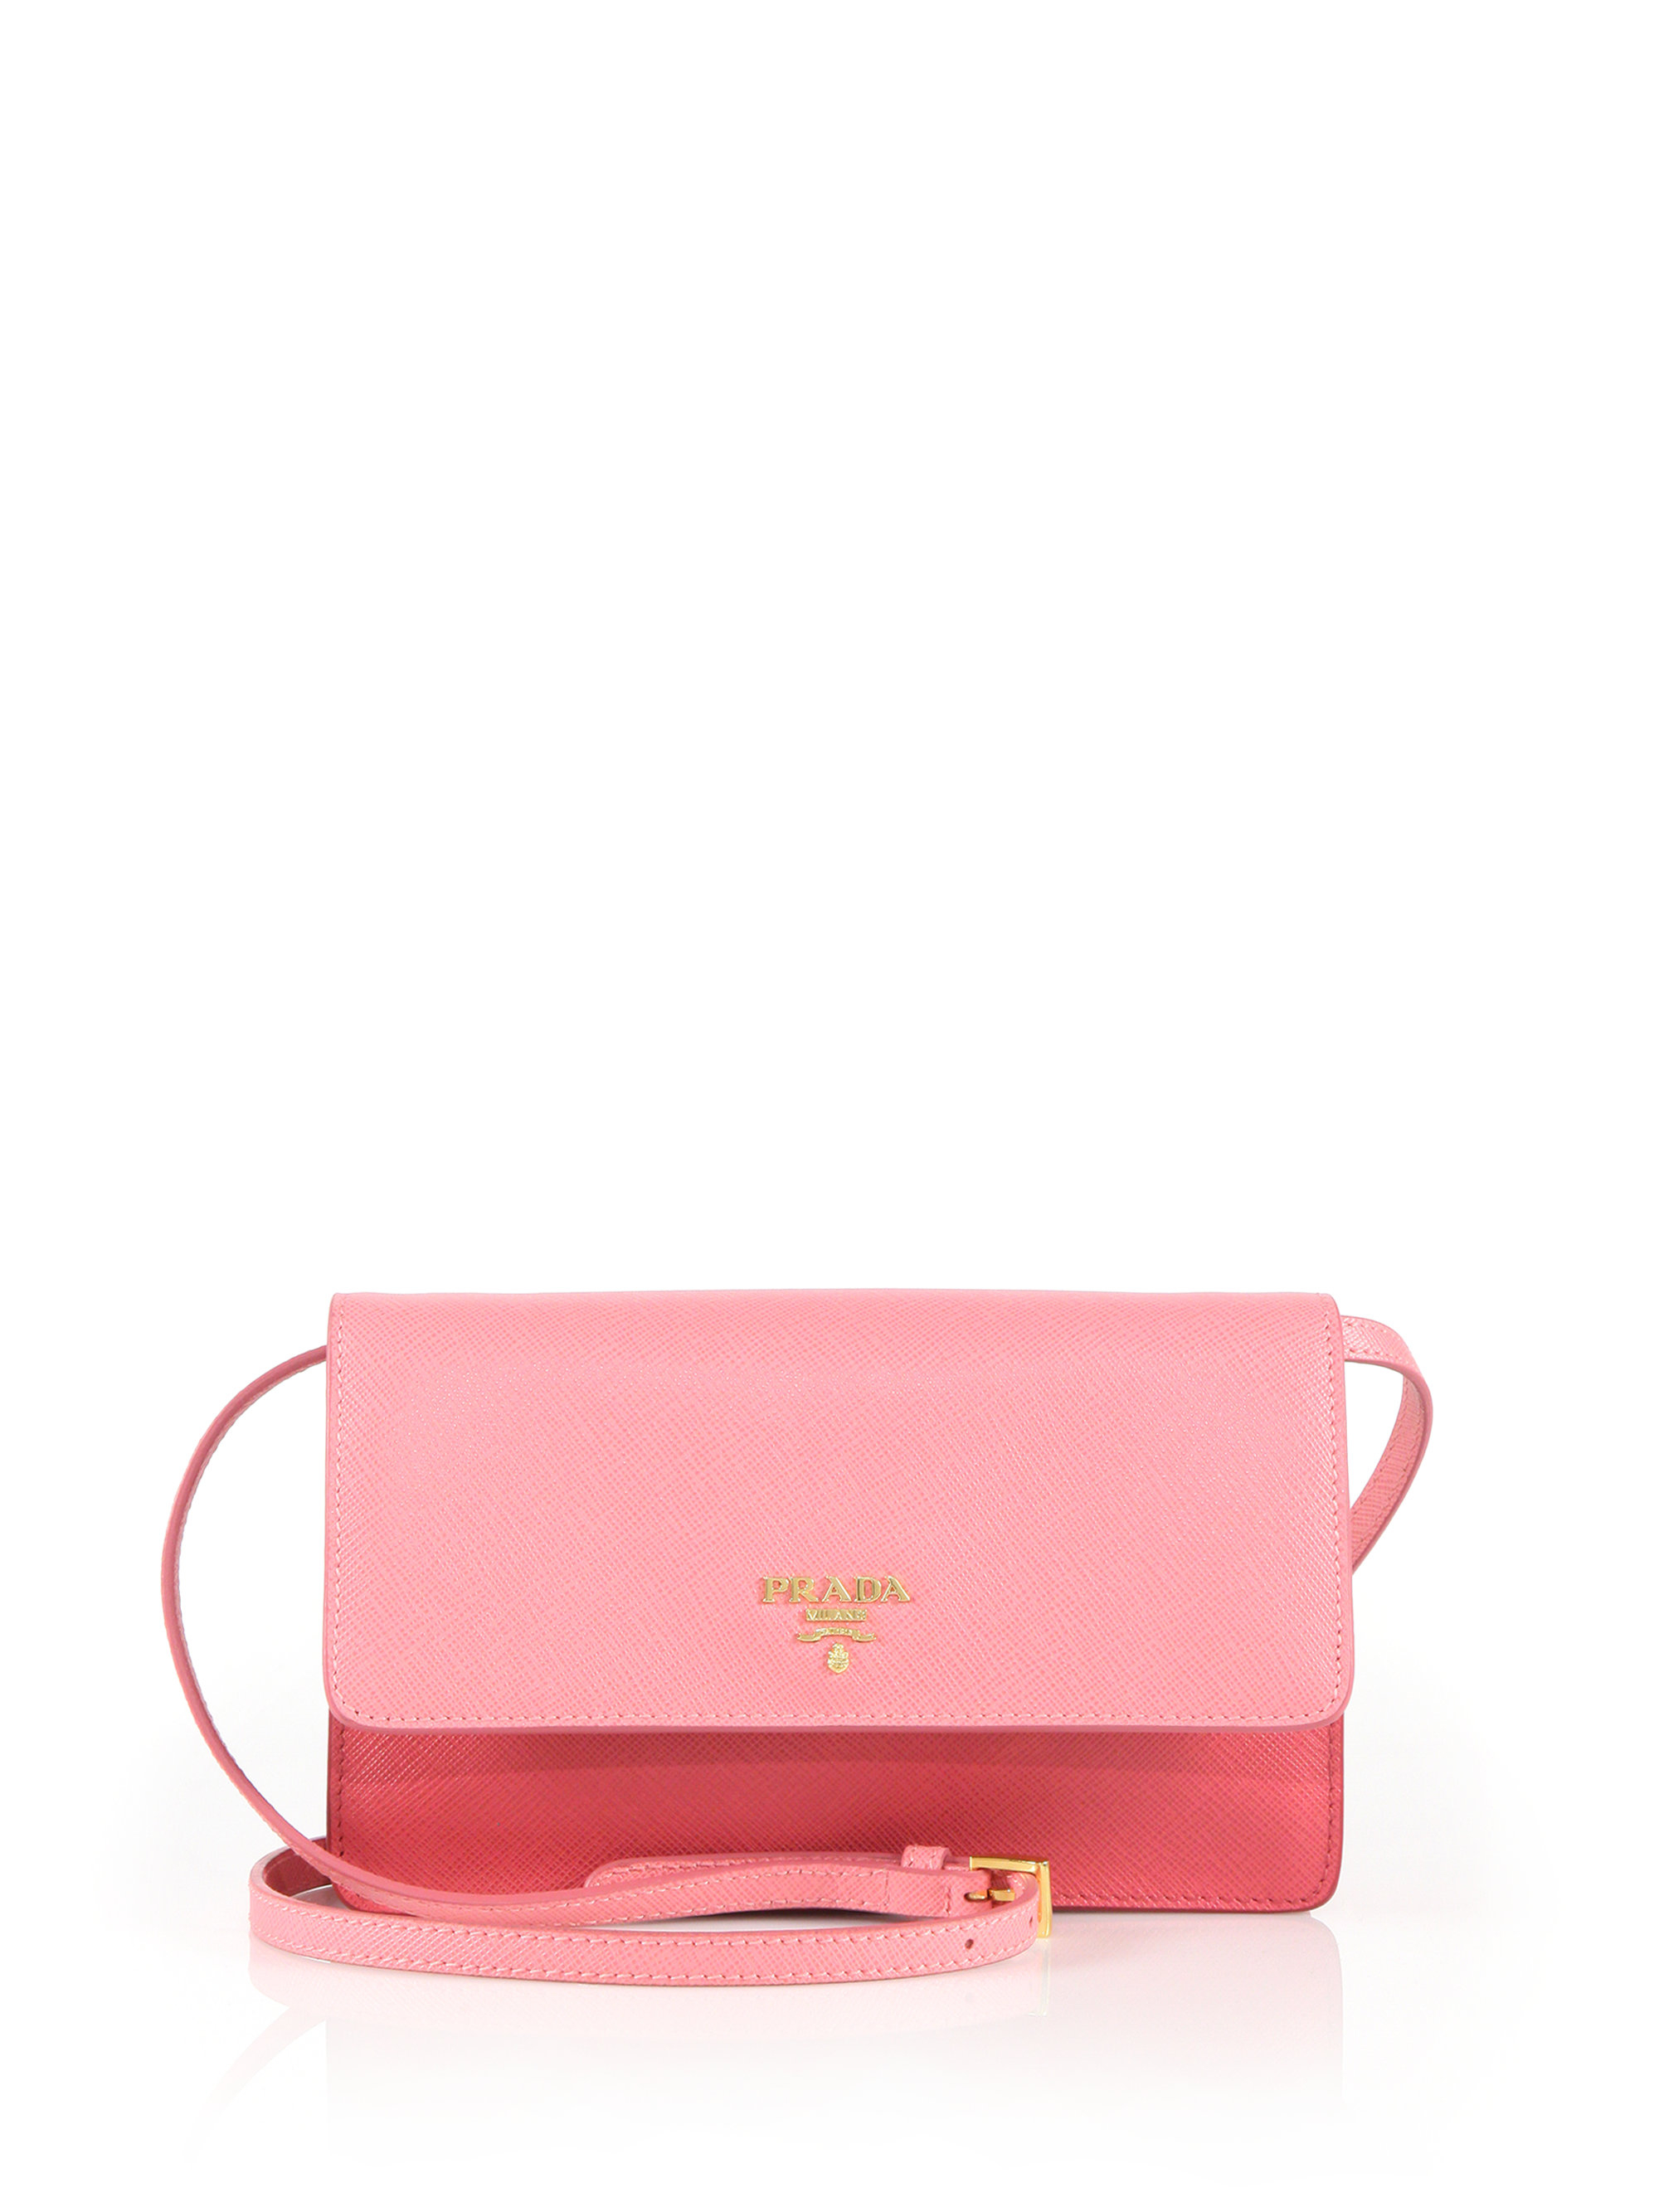 7e8ef1275ae5 ... switzerland lyst prada saffiano lux crossbody bag in pink ee0e1 69998  ...